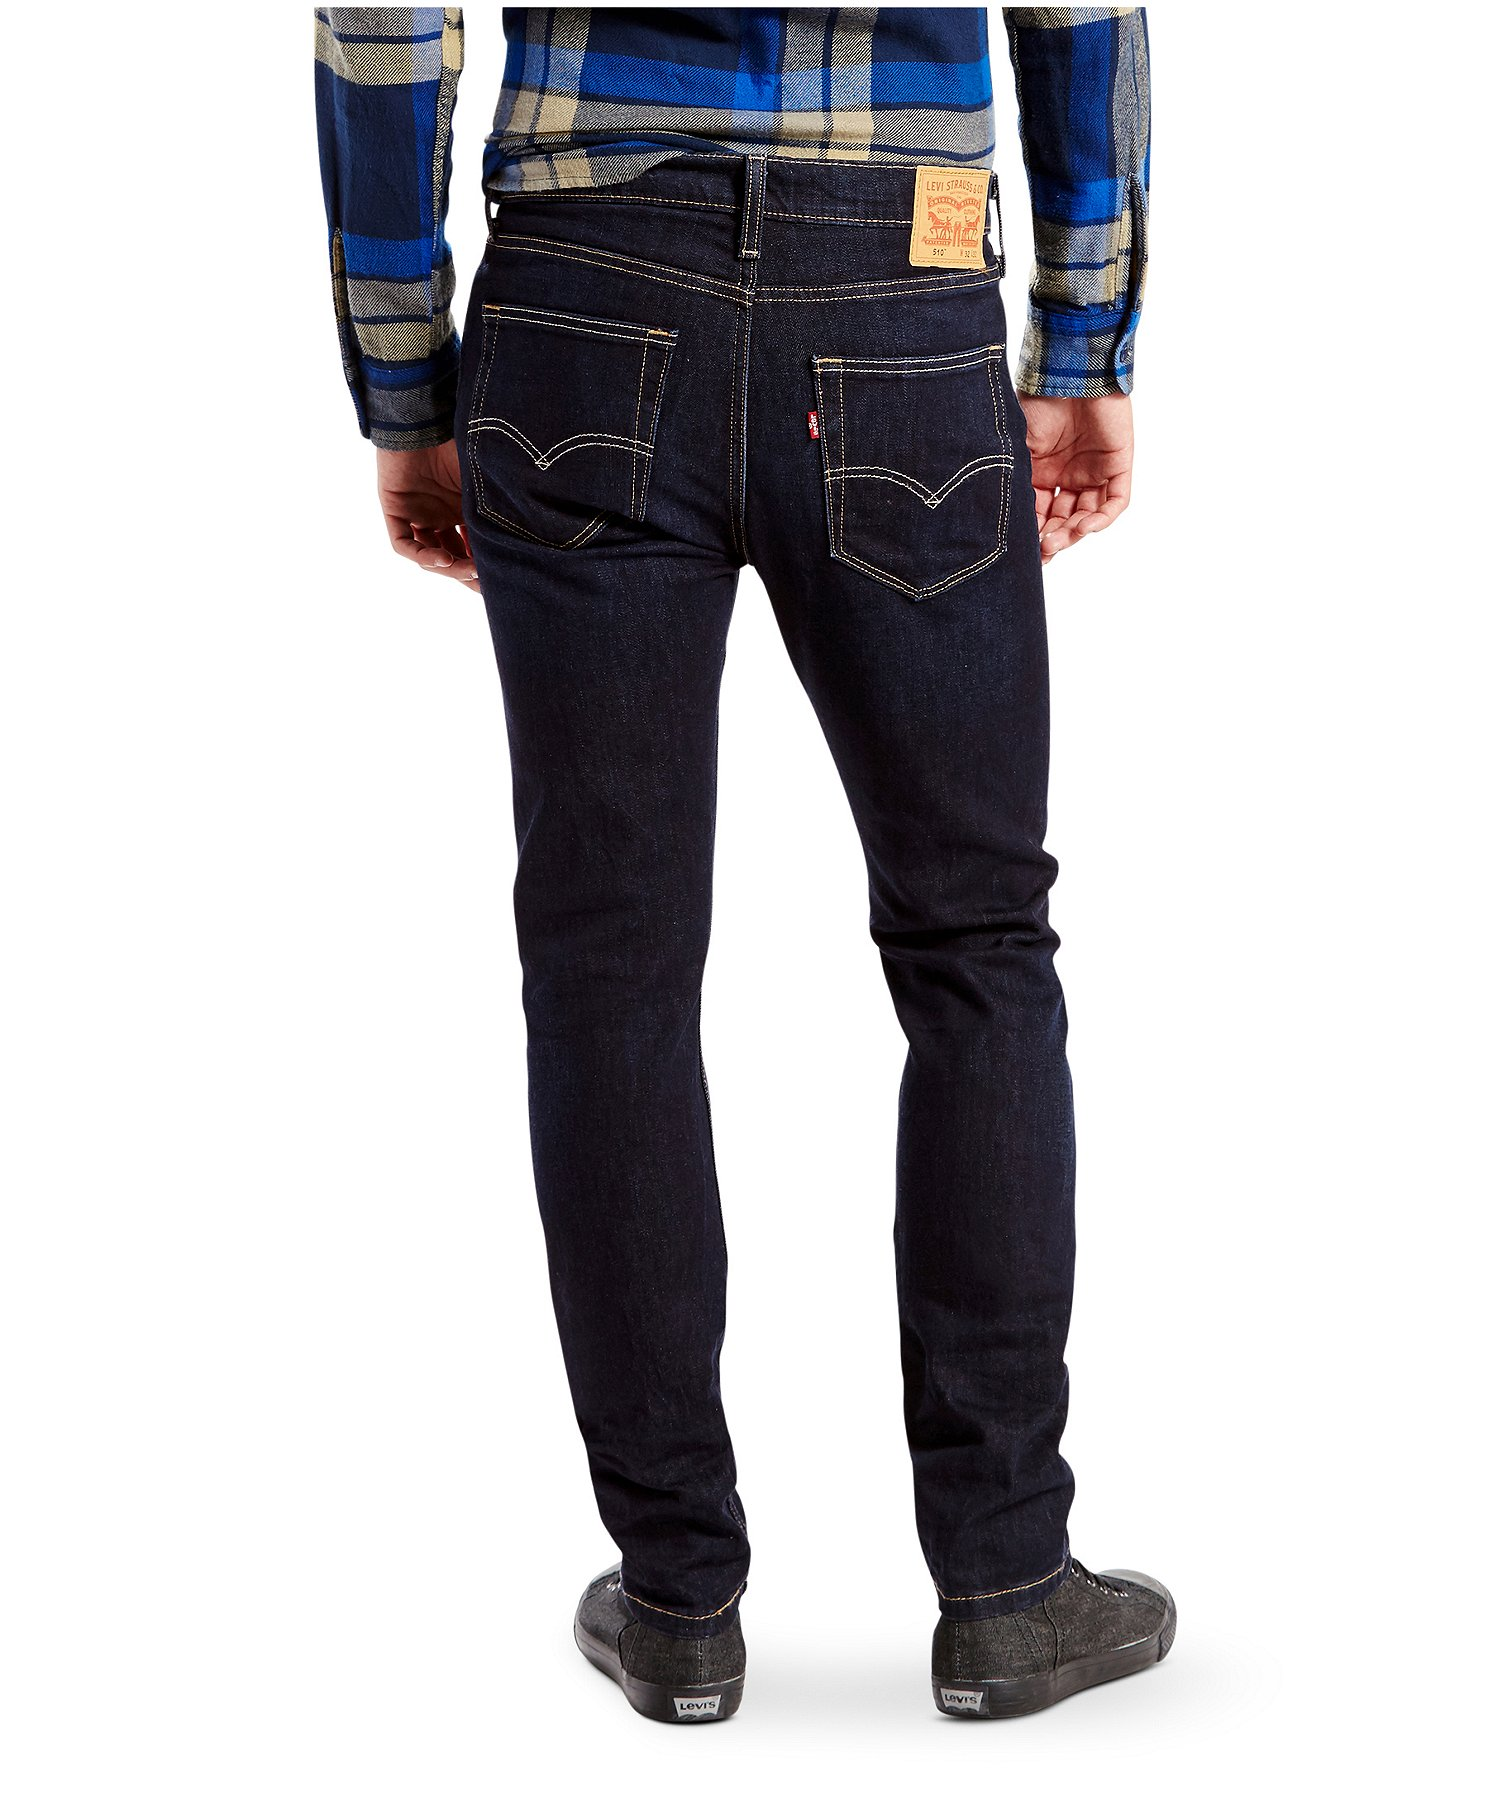 outlet online offer discounts classic shoes Men's 510 Skinny Fit Nevermind Jeans